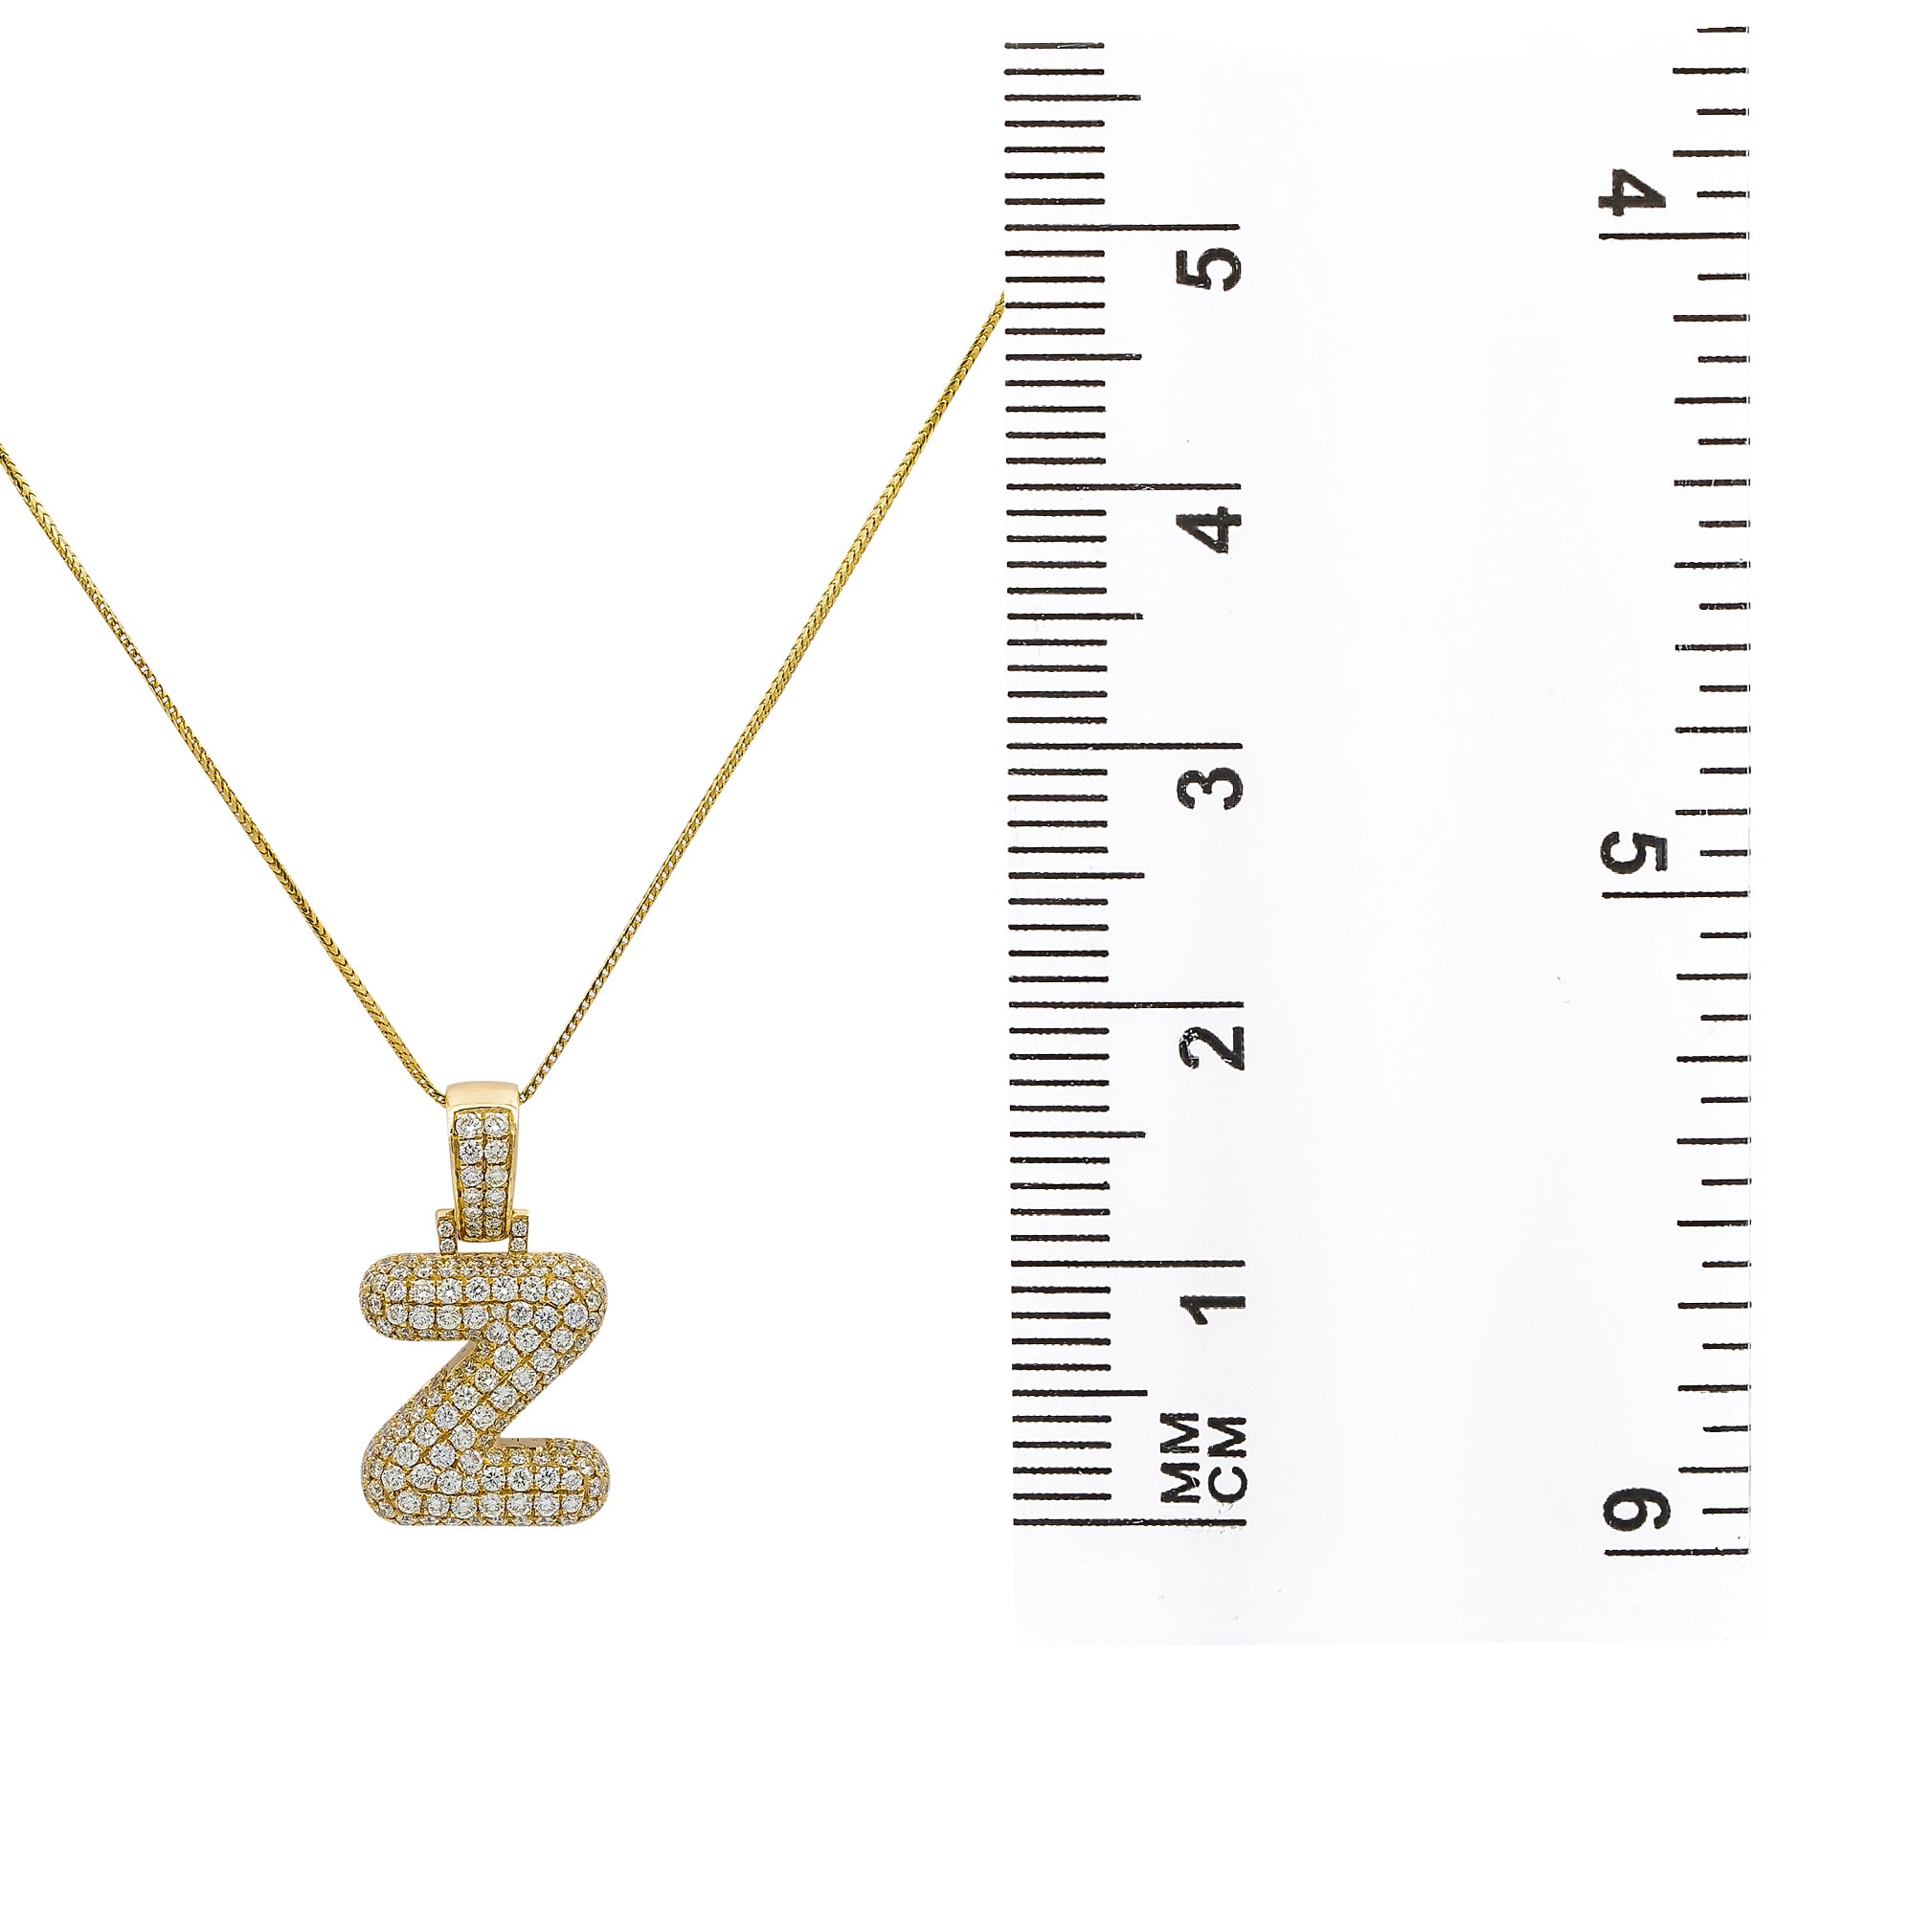 Unisex 14K Yellow Gold Z initial Pendant with 3.45 CT Diamonds